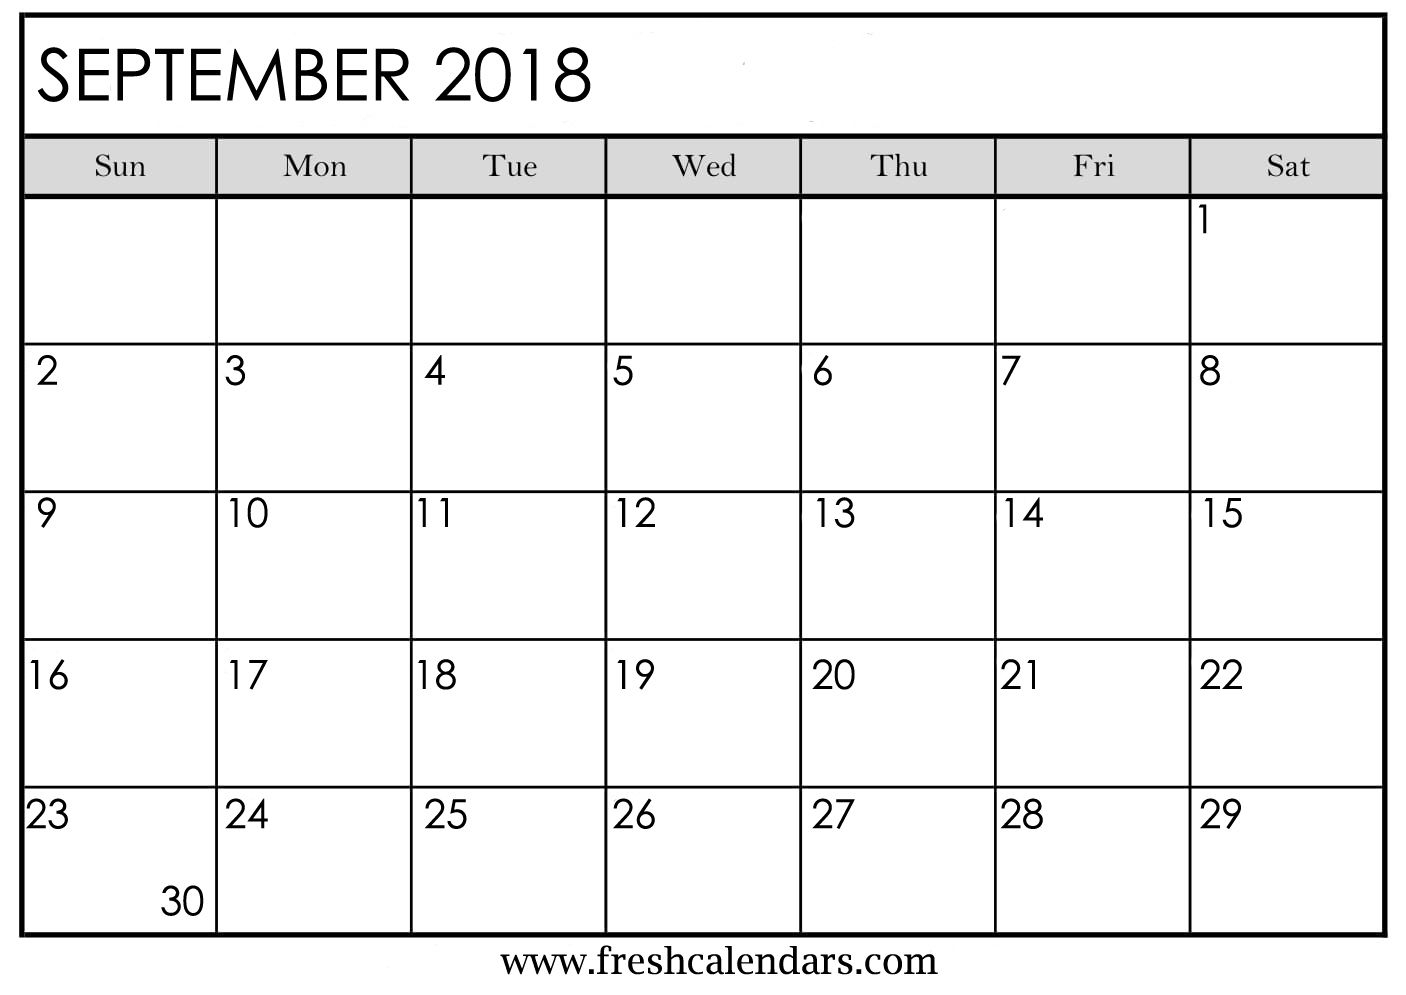 September 2018 Calendar Printable - Fresh Calendars with regard to Large Printable September Calendar With Holidays